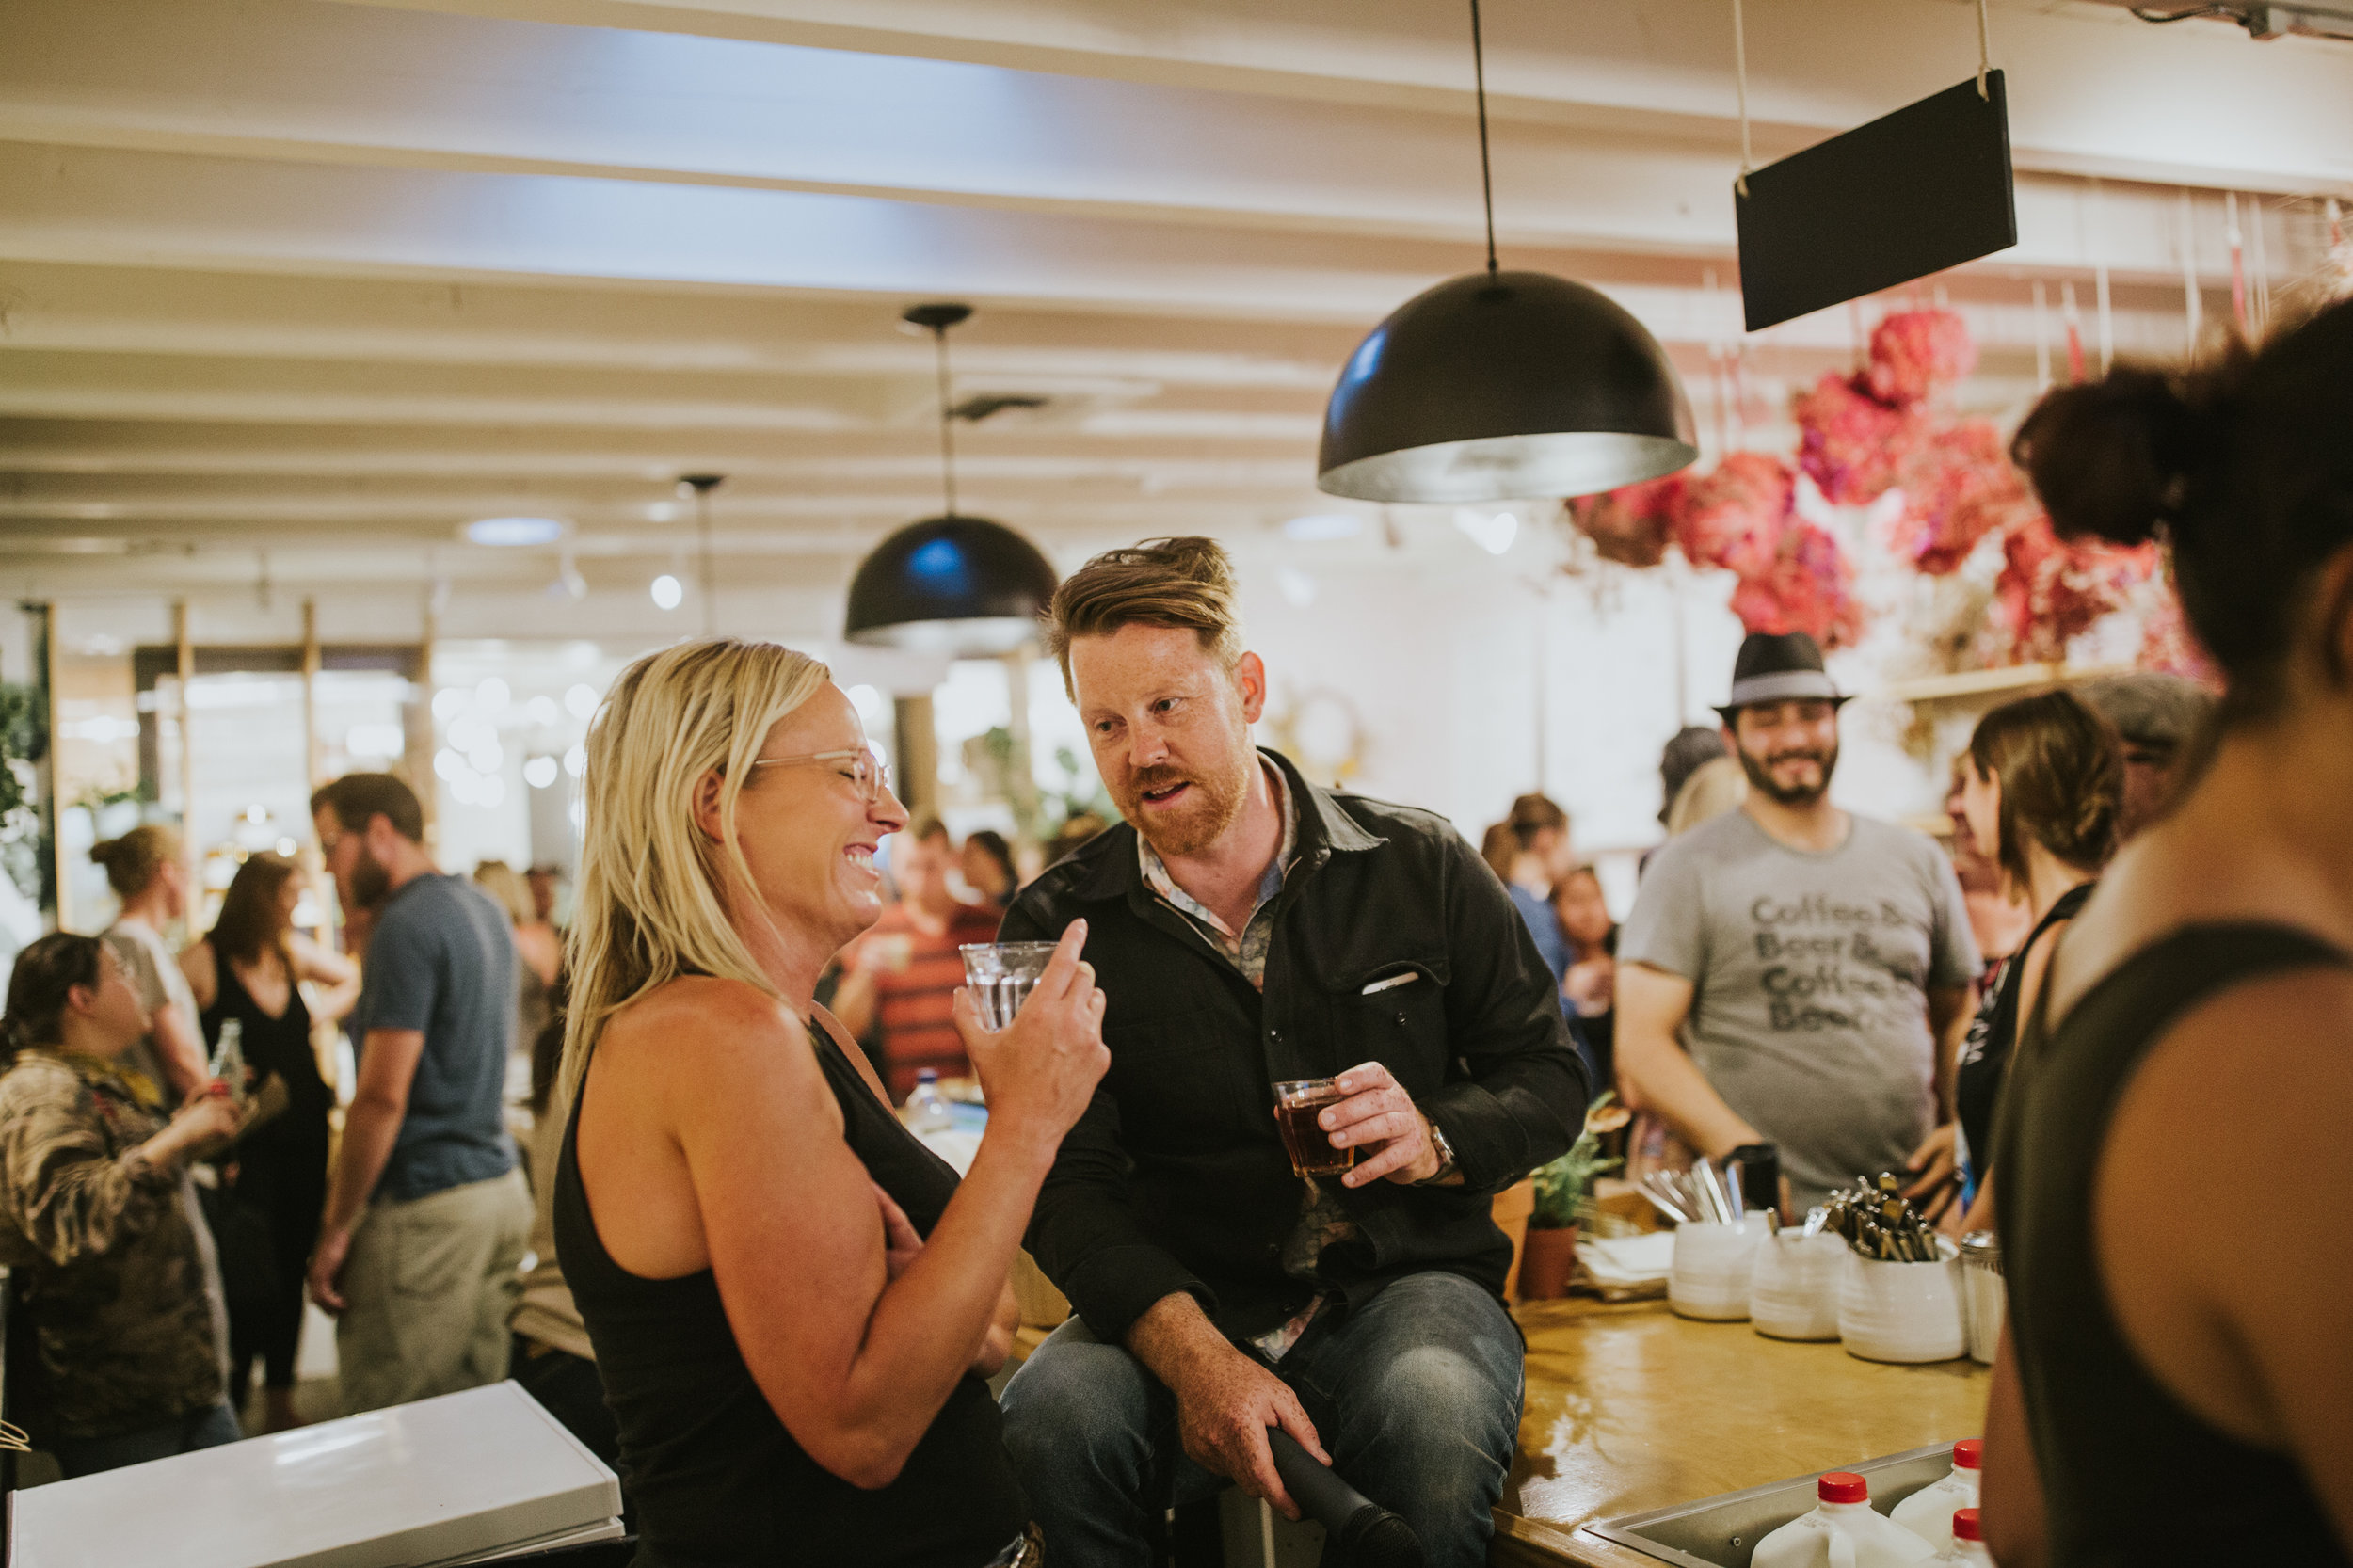 Pictured from left to right: Jen Byard, host and owner of Communal Coffee - Tyler Wells, emcee and owner of Nice Coffee Bar. Photo by Cameron Justin Yu